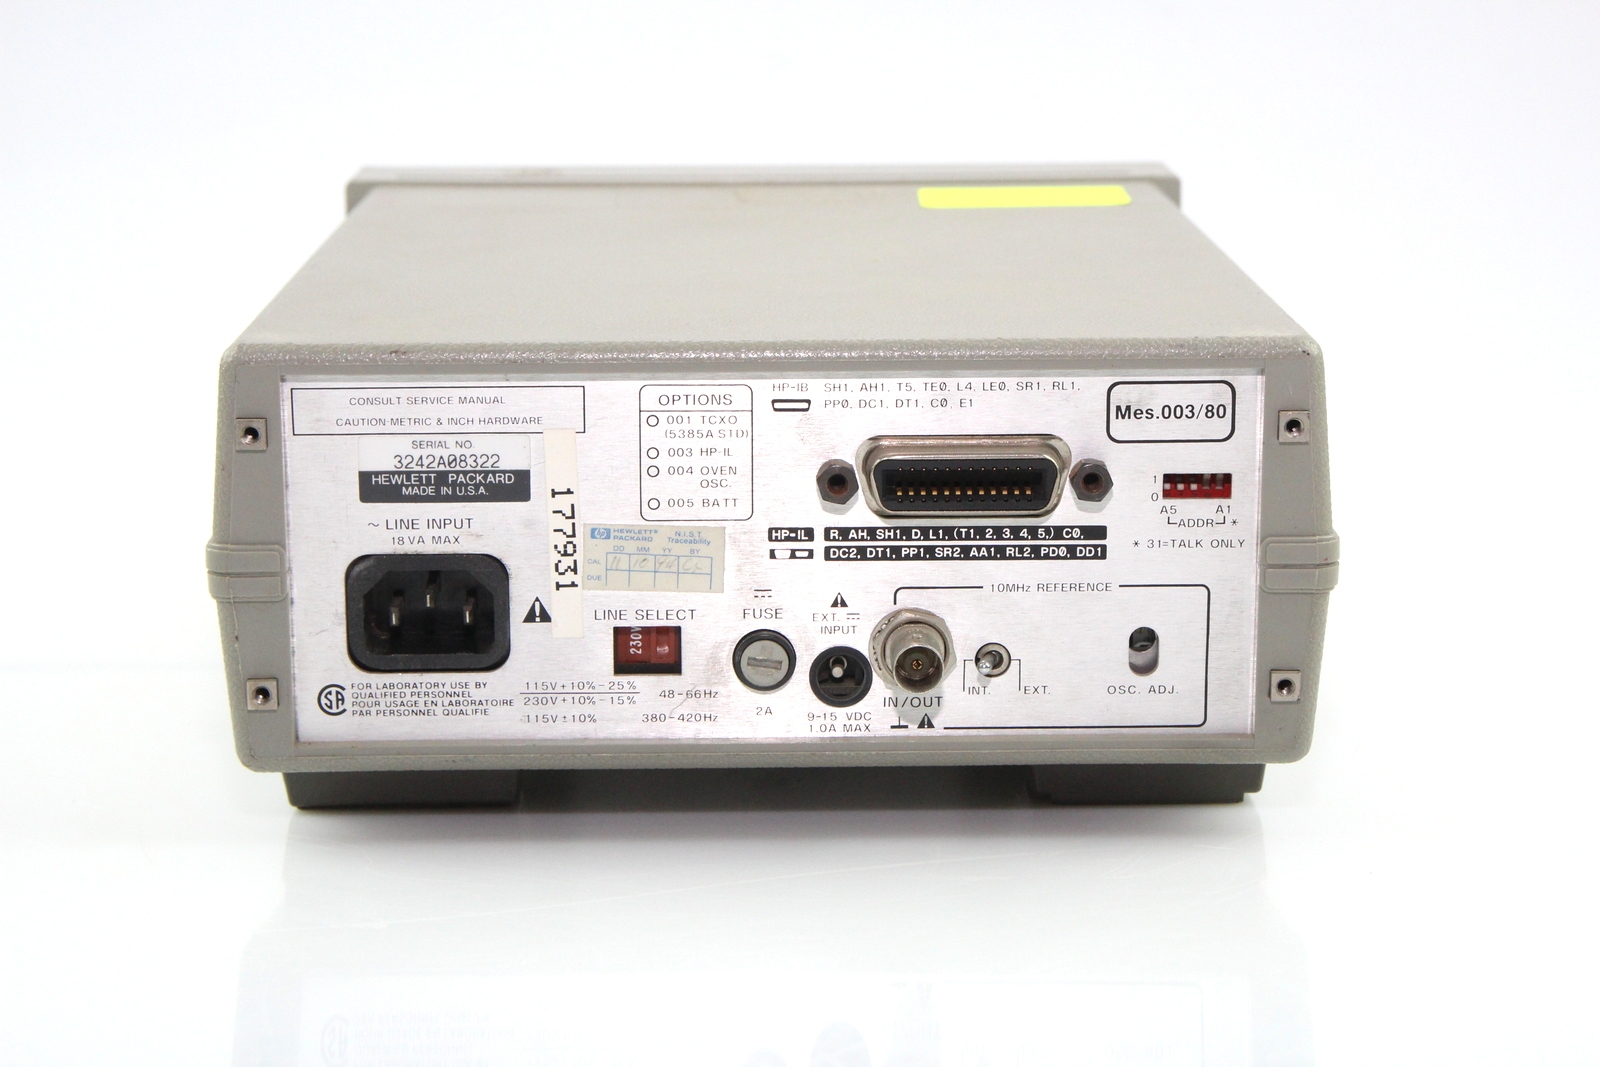 Hp 5385a Frequency Counter Manual Schematic For Sale Test Equipment Center